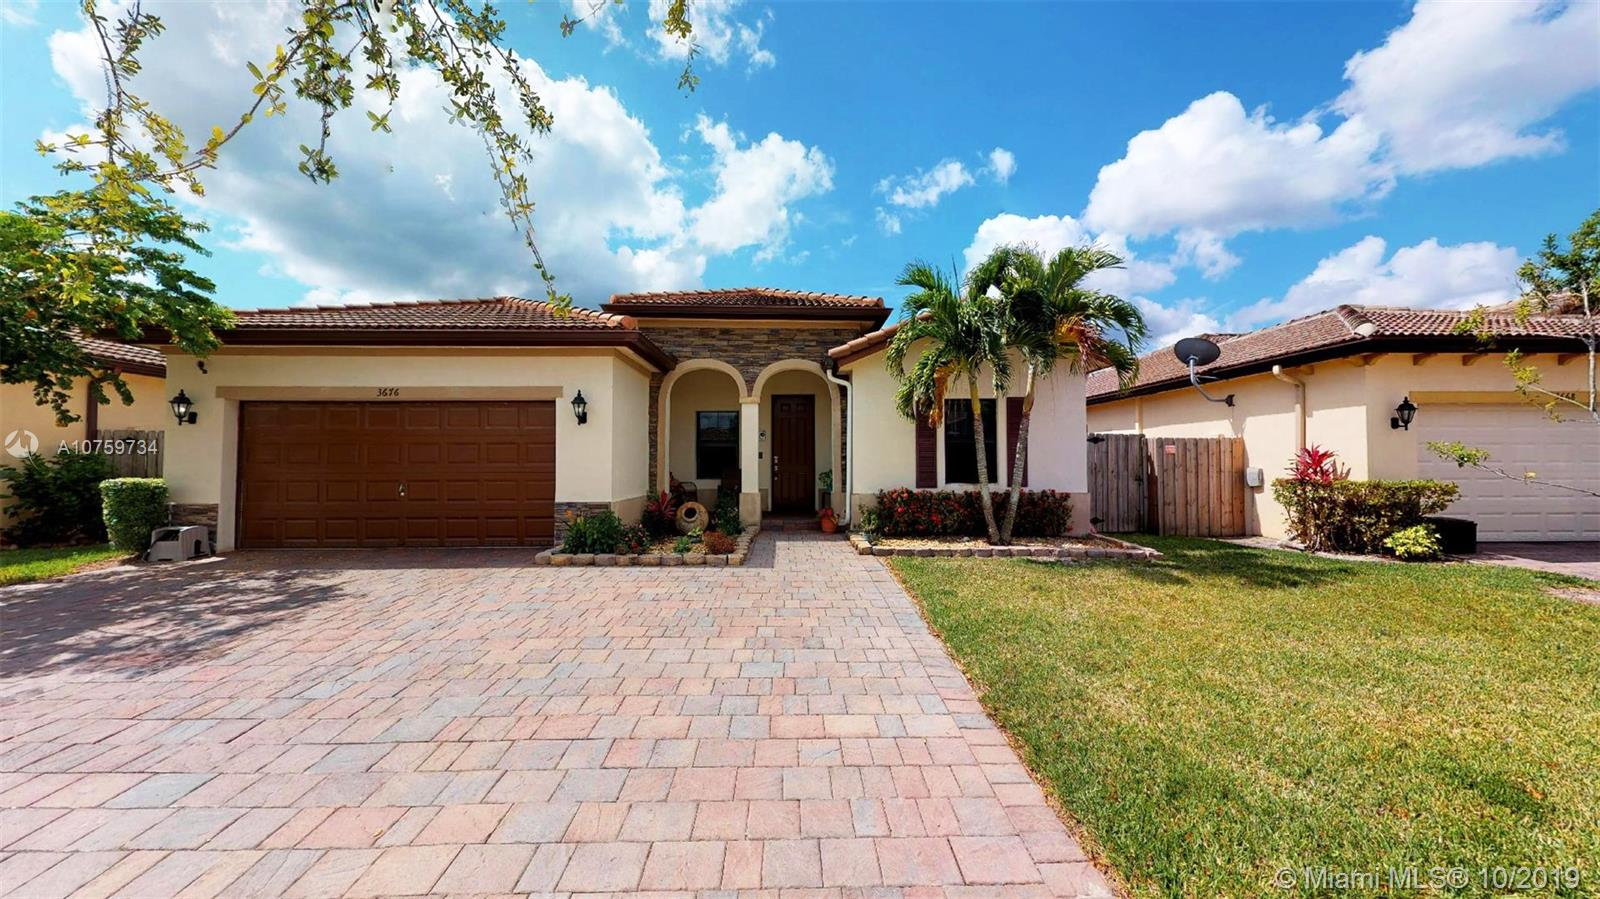 3676 SE 2nd Ct, Homestead, FL 33033 - Homestead, FL real estate listing